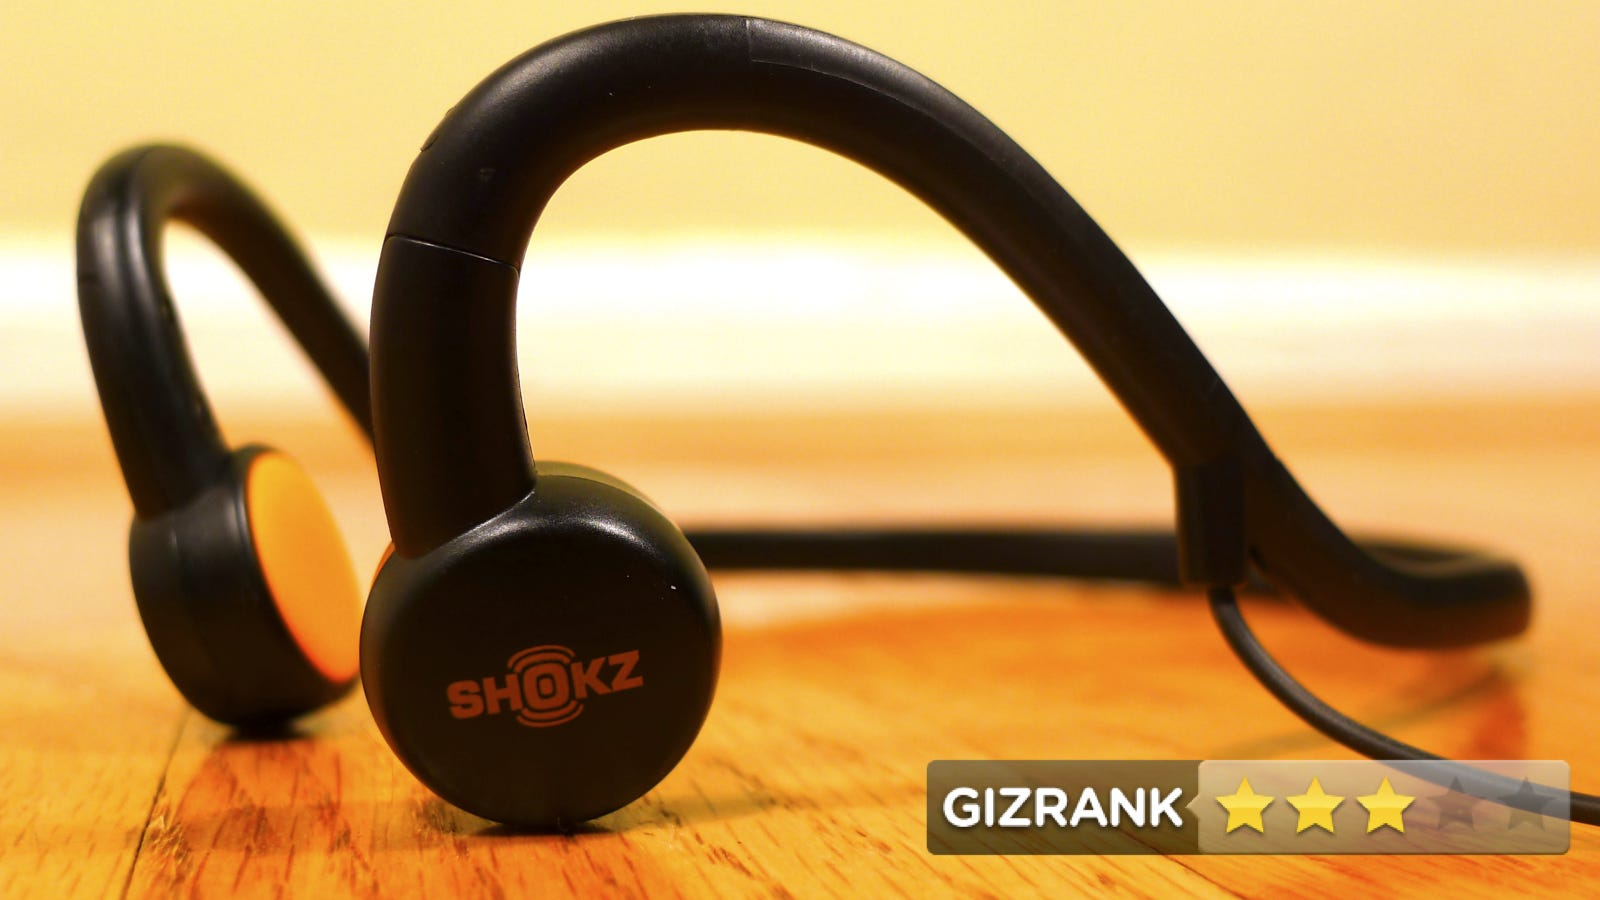 jbl t210 earbuds - AfterShokz Sportz M2 Review: Decent Sounding Headphones, No Ears Required